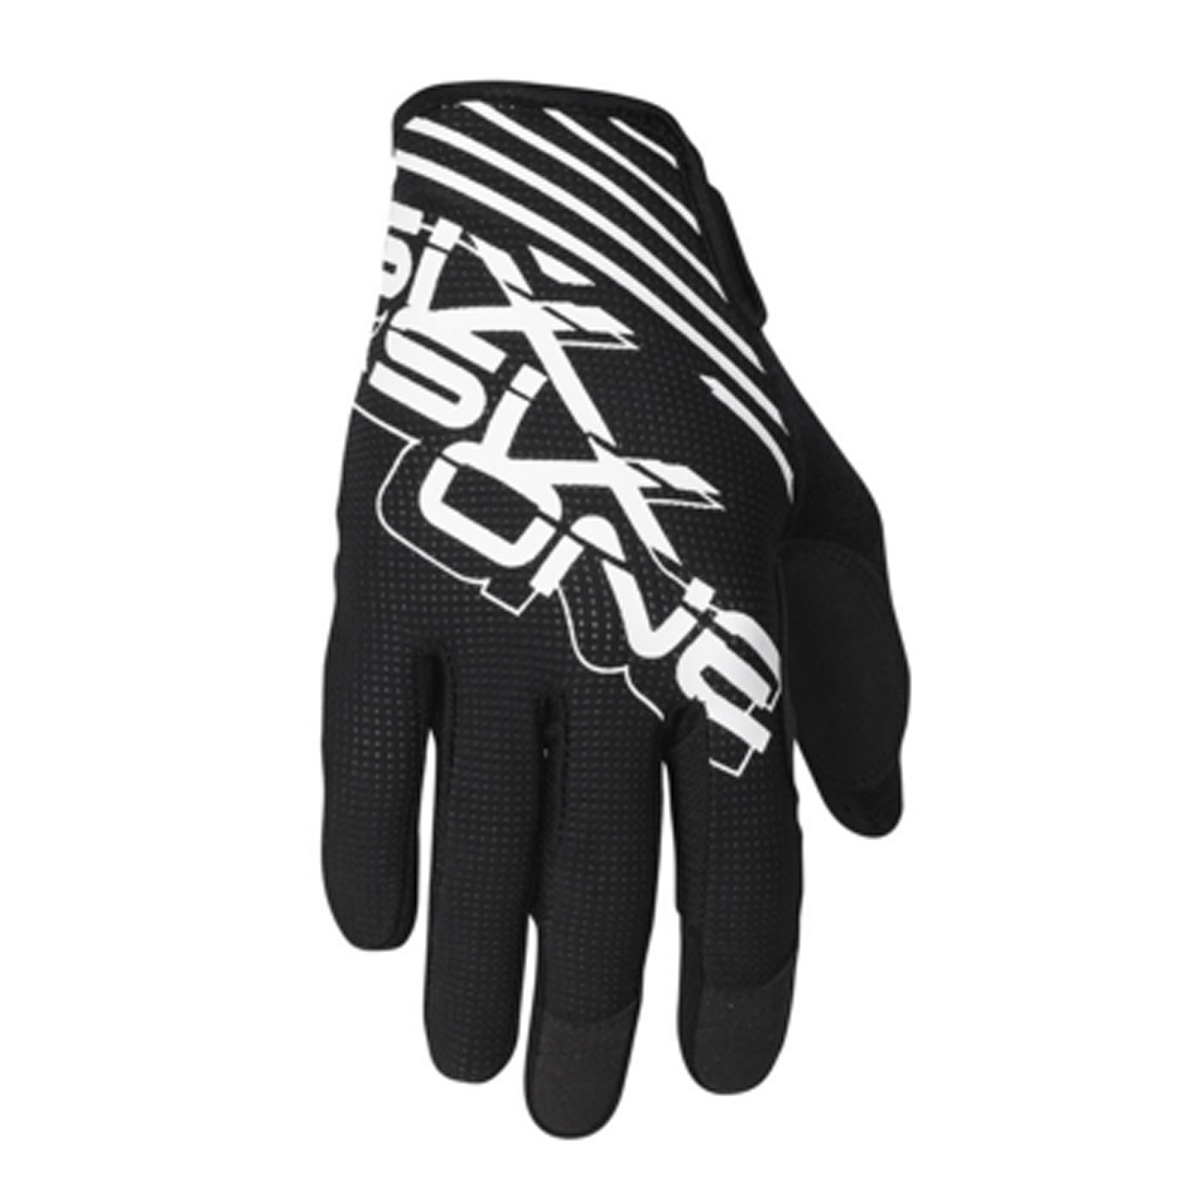 SixSixOne 2016 Men's Raji Full Finger Mountain Cycling Gloves - 7110